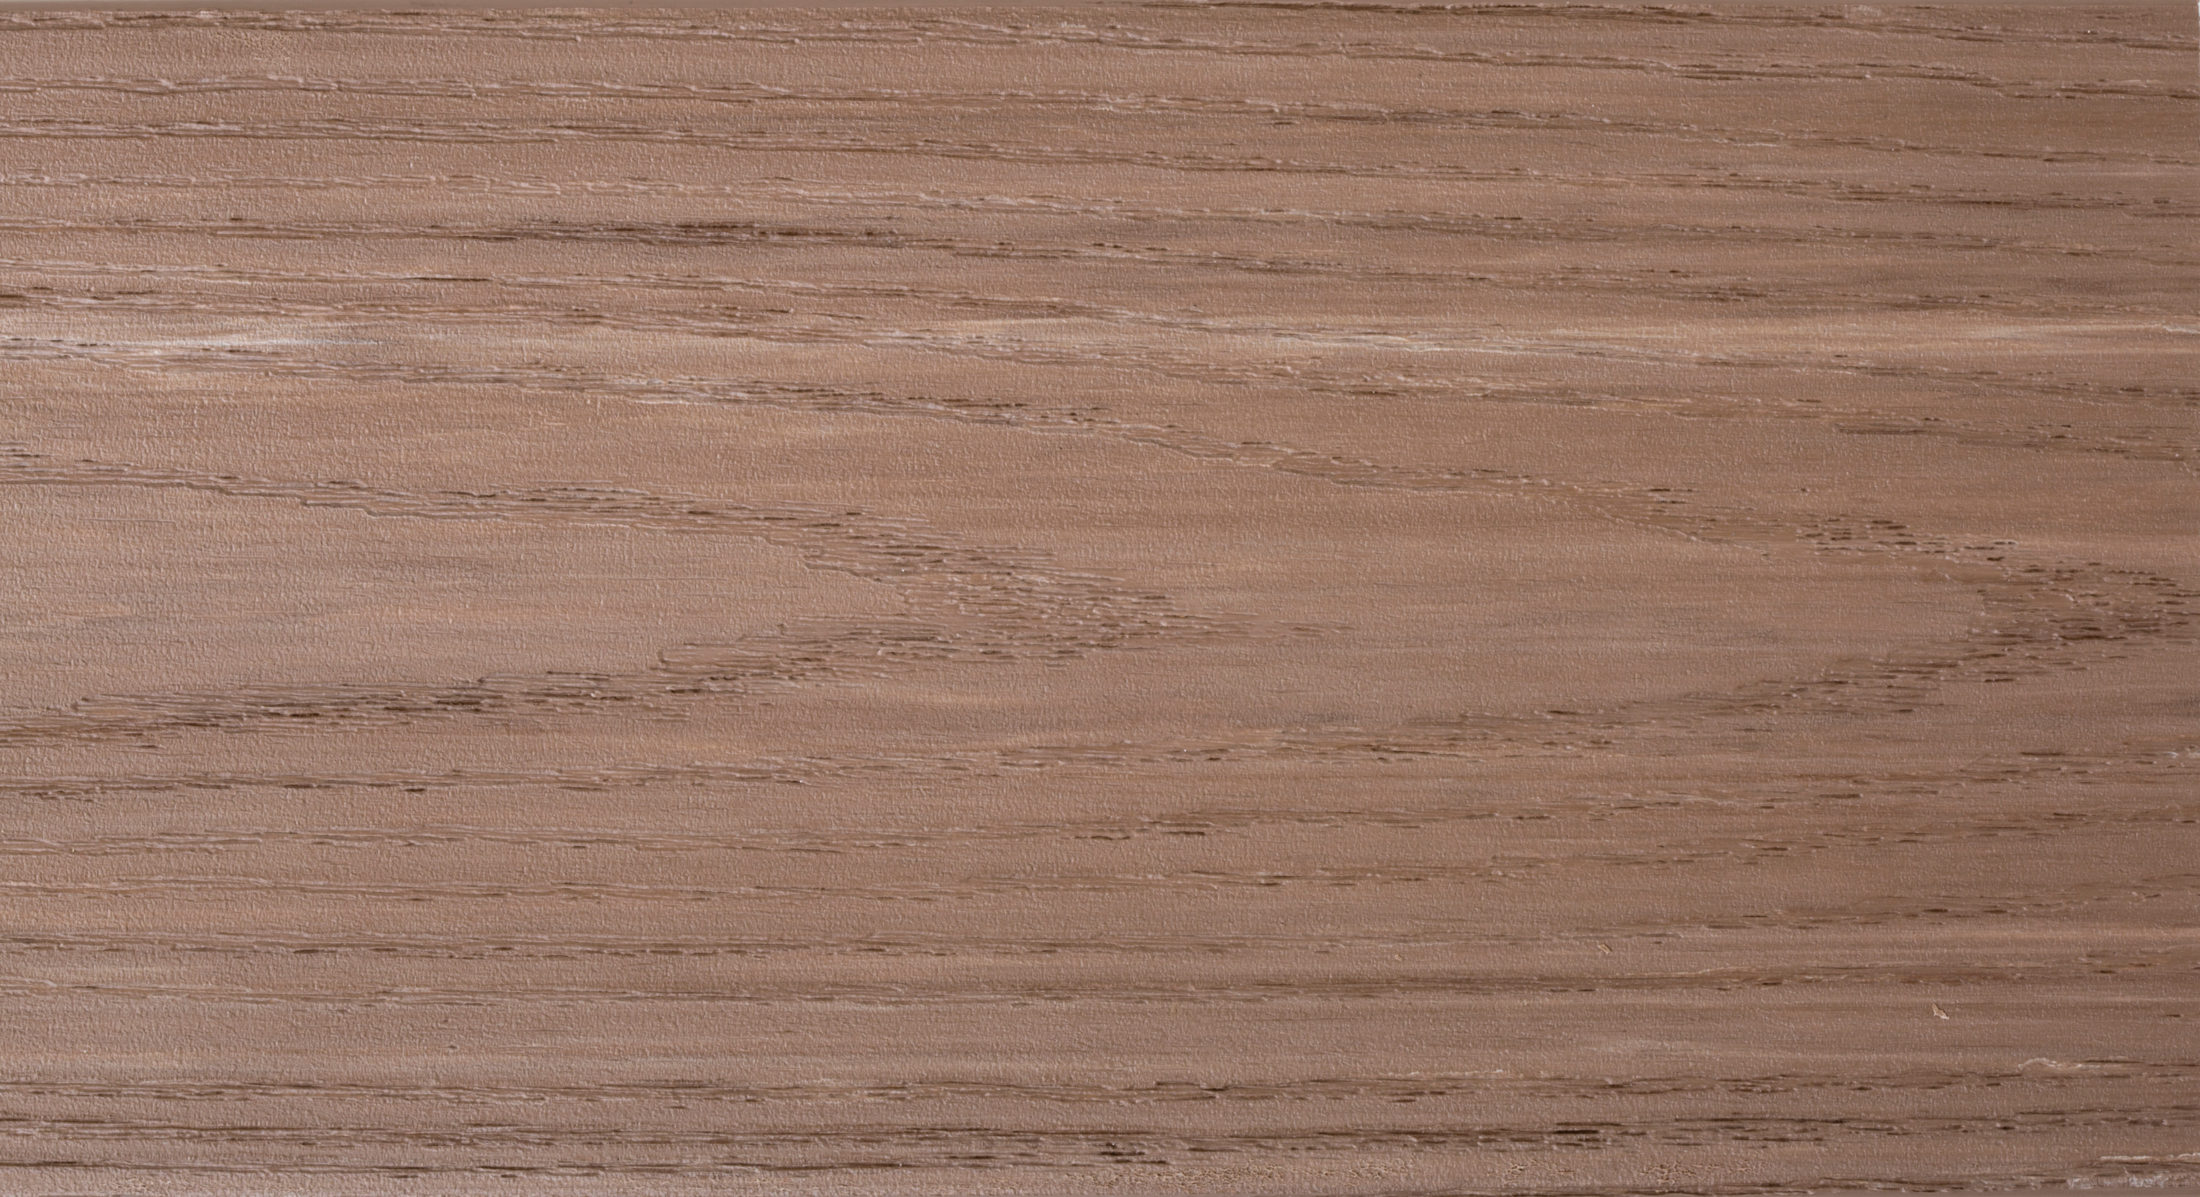 Azek Harvest Collection Autumn Chestnut Grooved 12